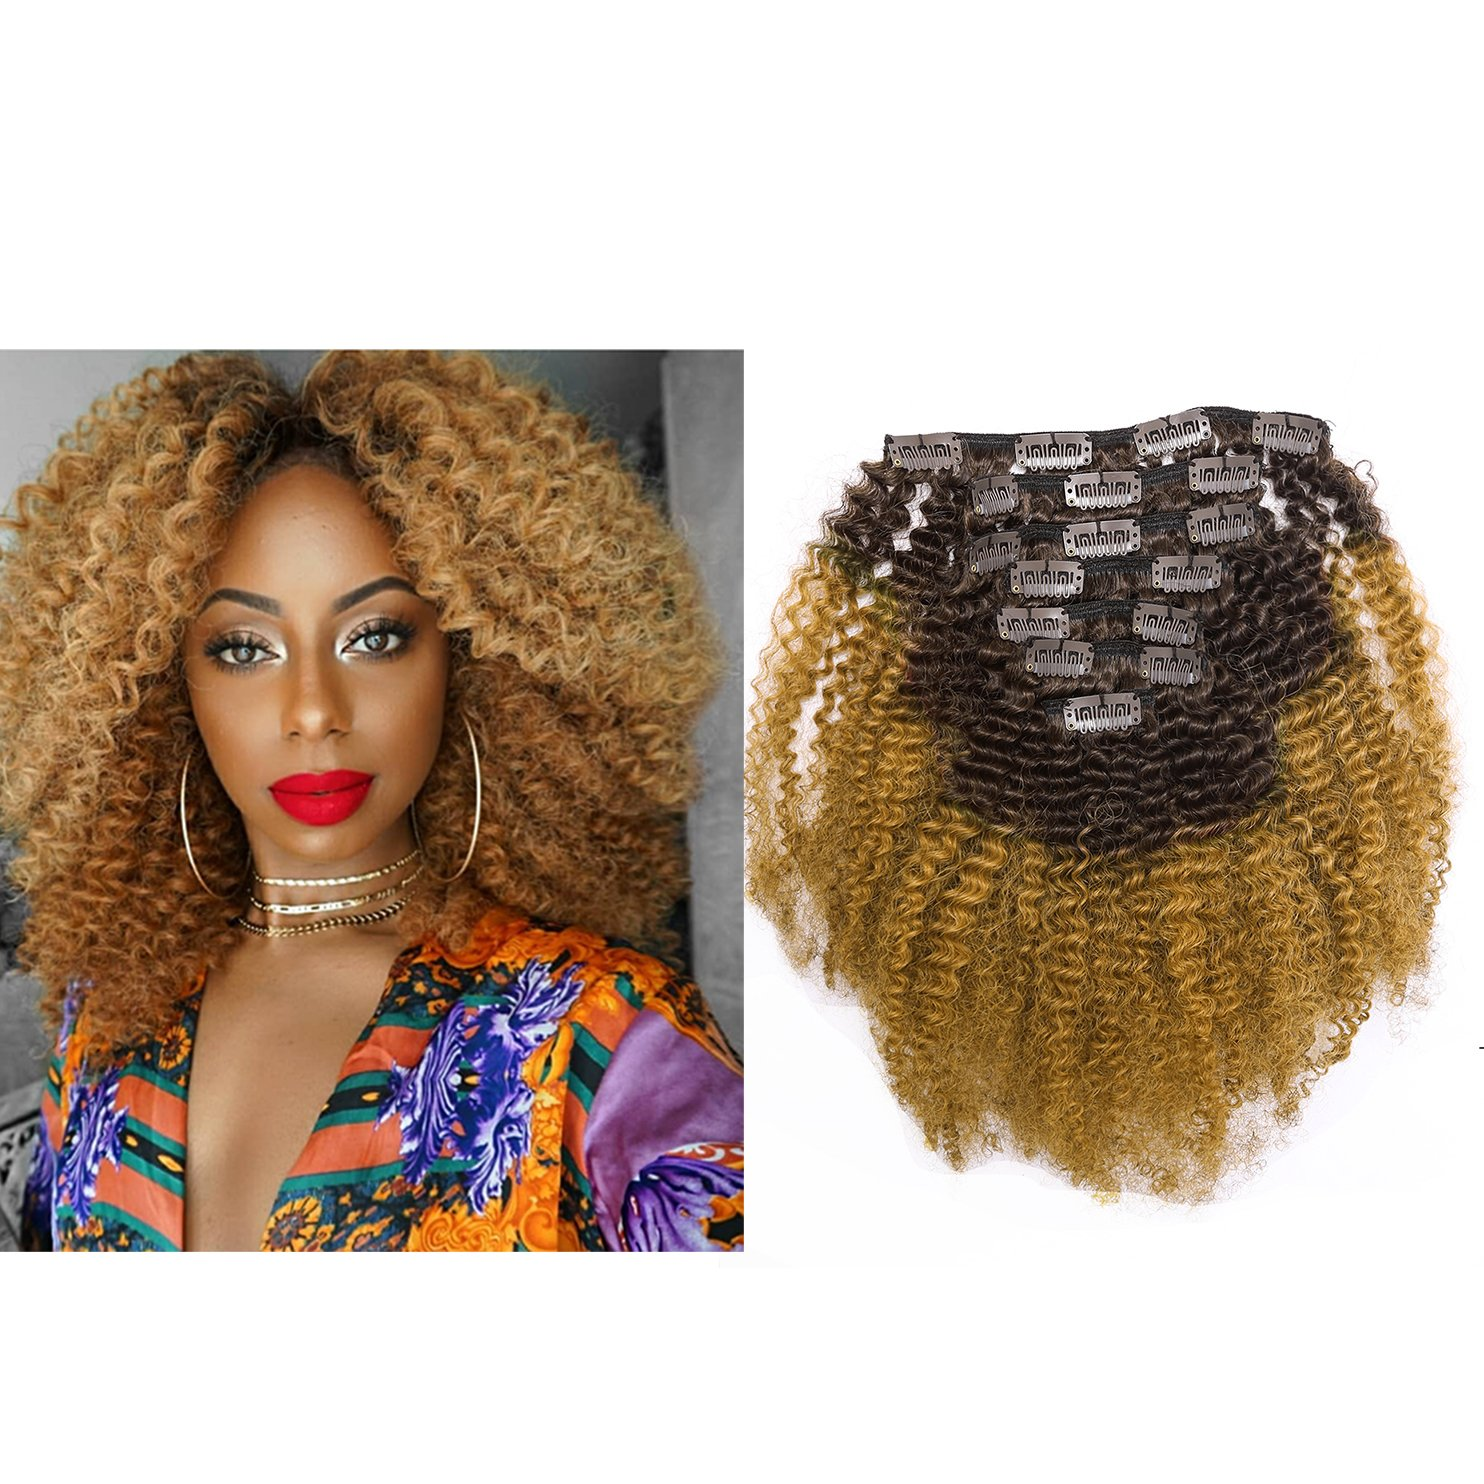 8 a grade ombre capelli umani clip in Remy Hair extensions 10 – 55, 9 cm nero a rosso bordeaux # 1B/99J bicolore 4B 4 C afro Kinky Curly Balayage naturale dei capelli clip on Lacer